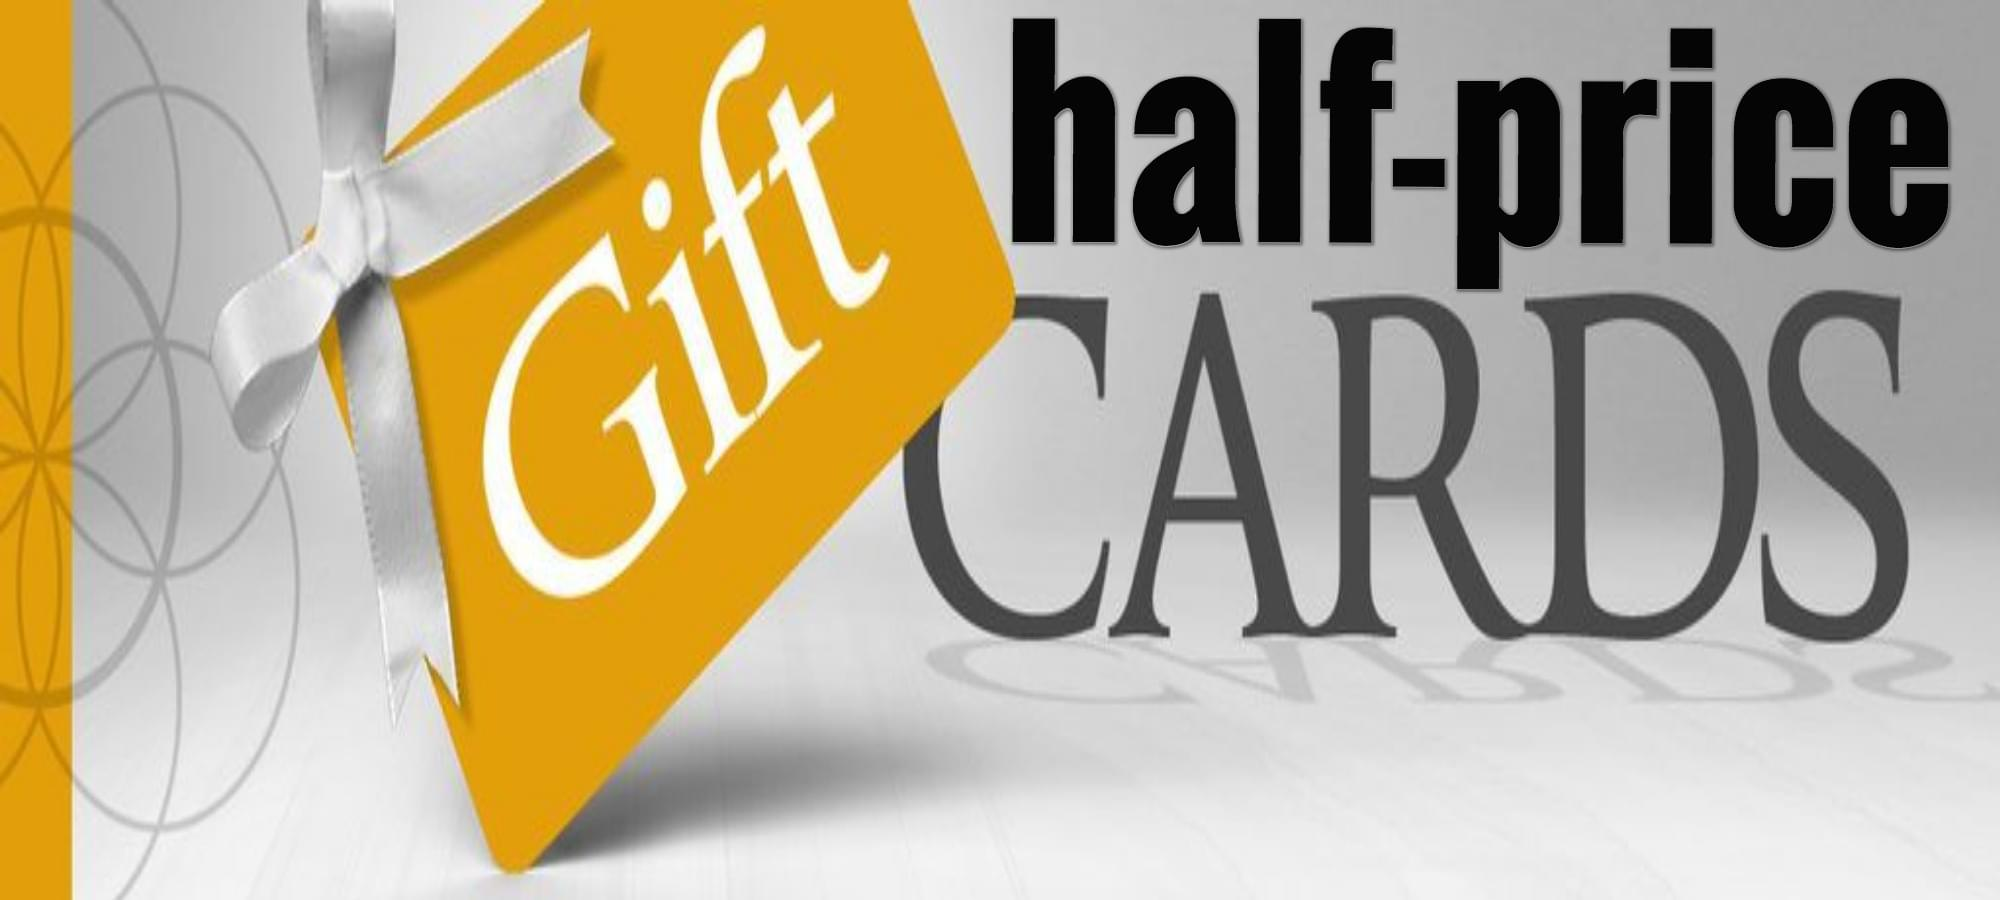 1/2 Price Gift Cards